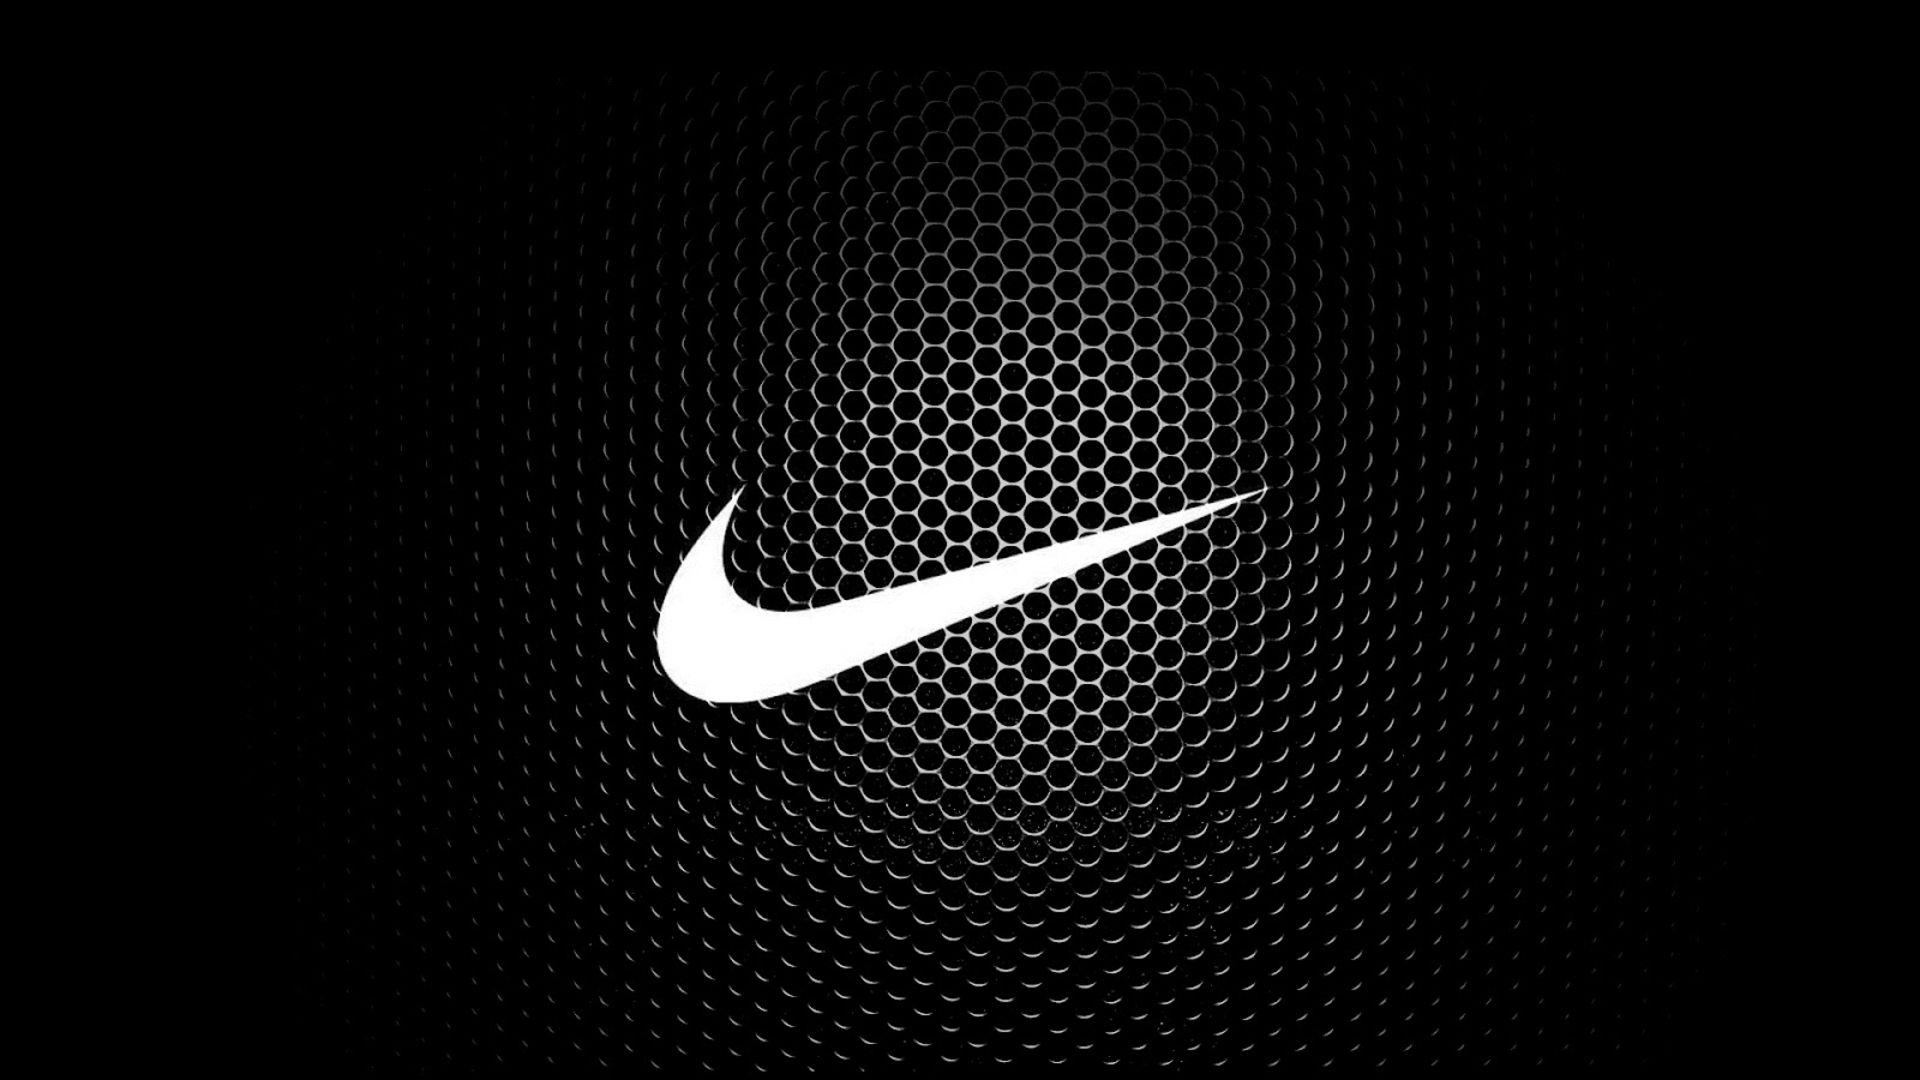 Nike Wallpapers HD 2015 - Wallpaper Cave